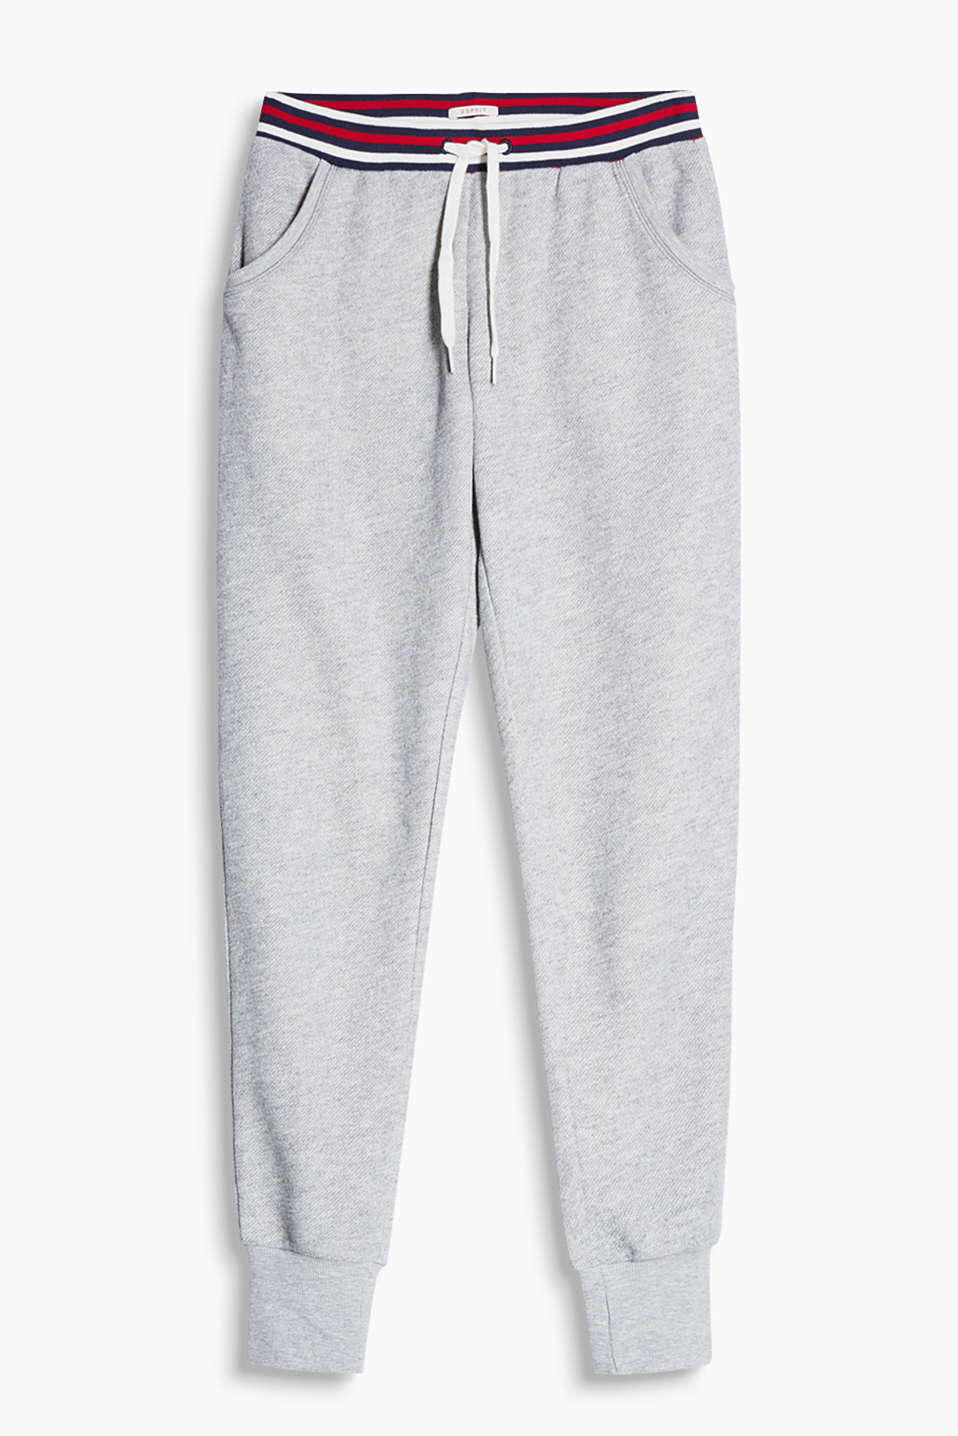 Textured tracksuit bottoms with a striped elasticated waistband